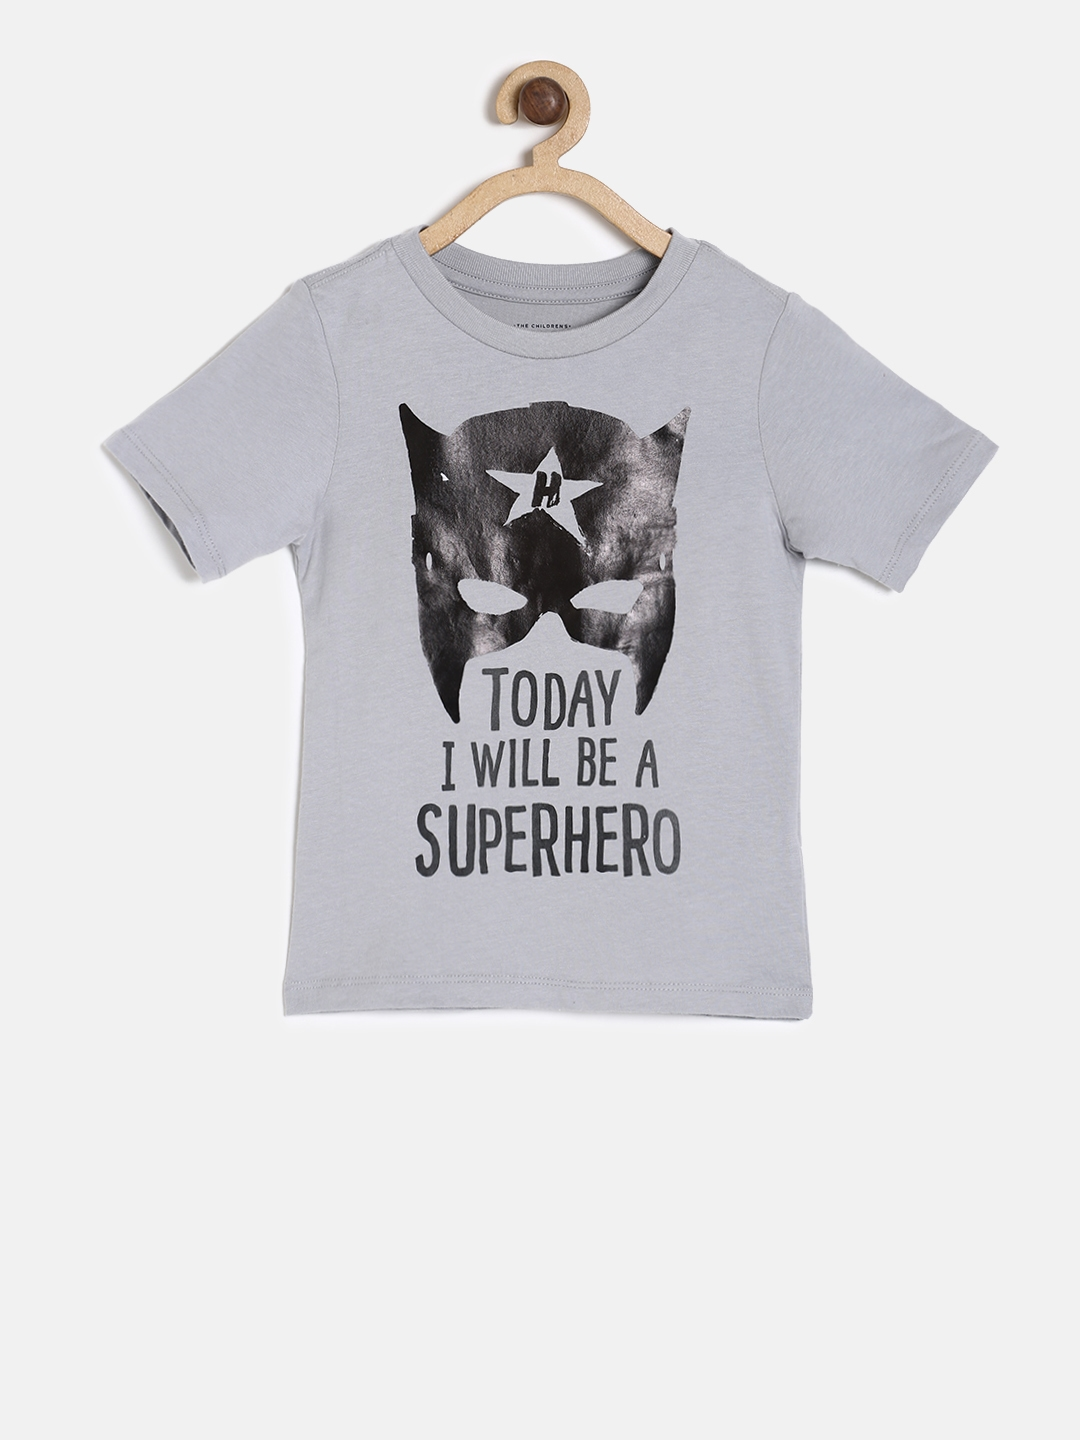 549ac8f6 Buy The Childrens Place Boys Grey Printed Round Neck T Shirt ...